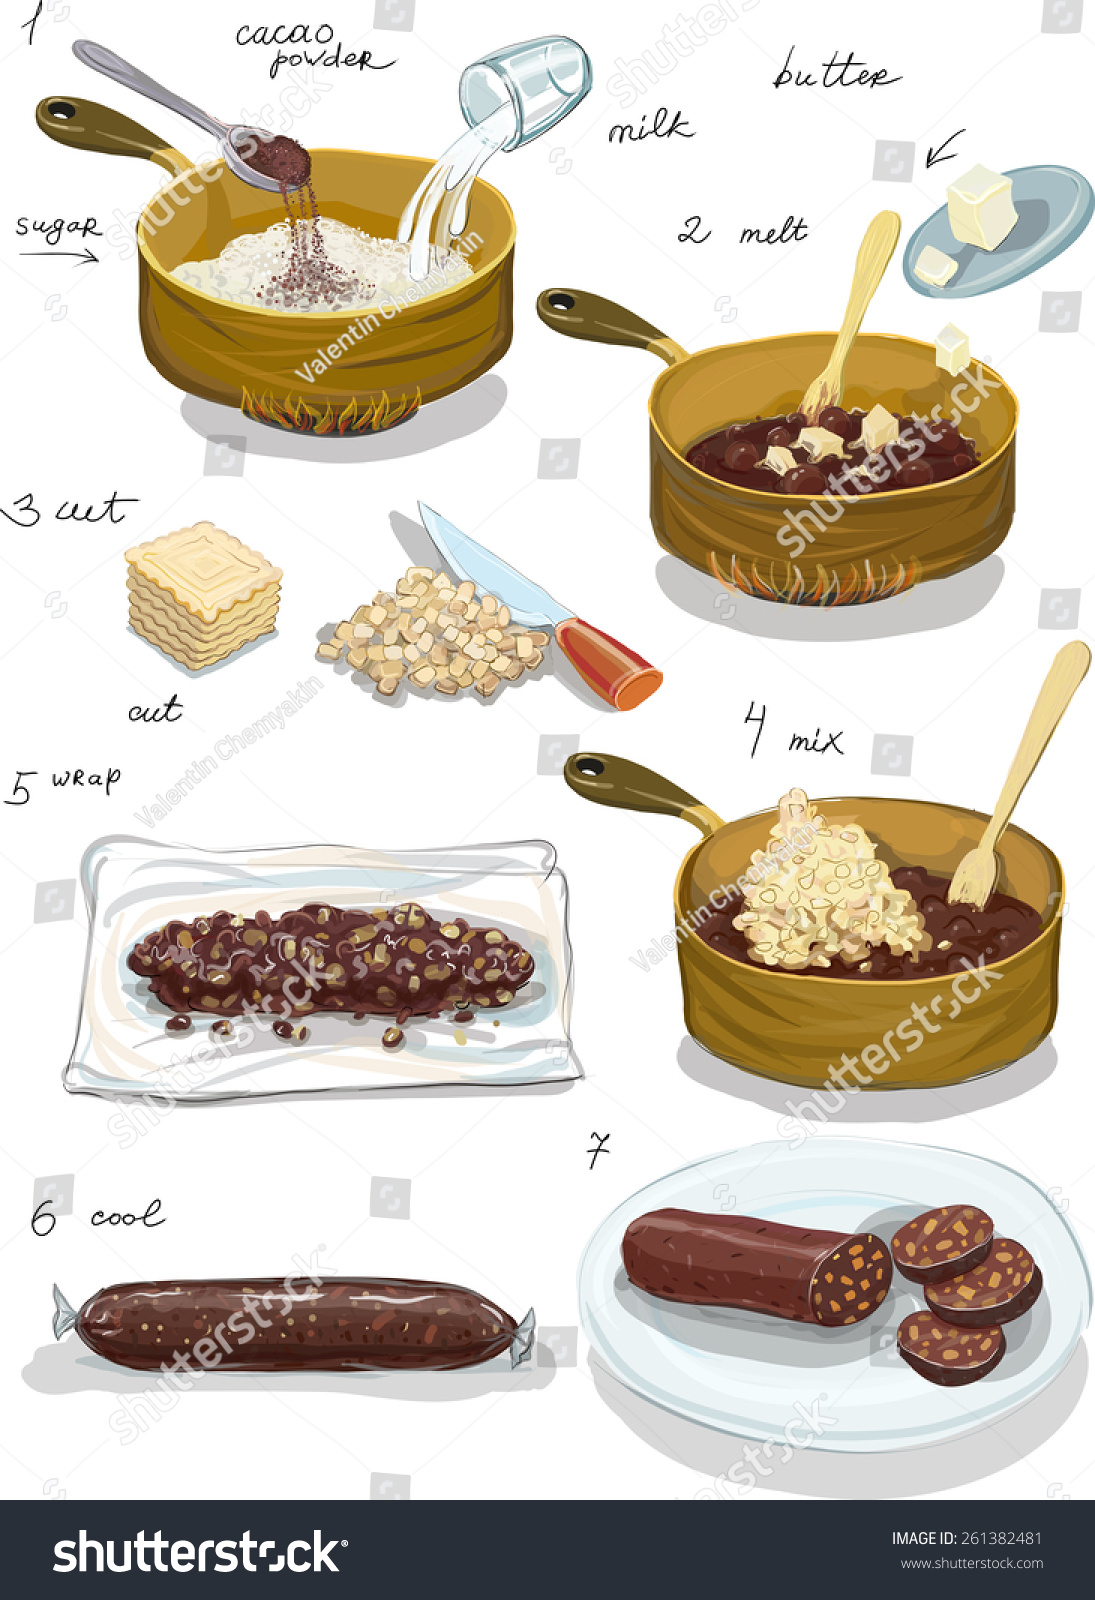 Cake Recipes With Step By Step Images : Sweet Chocolate Sausage. Fast And Delicious Chocolate ...